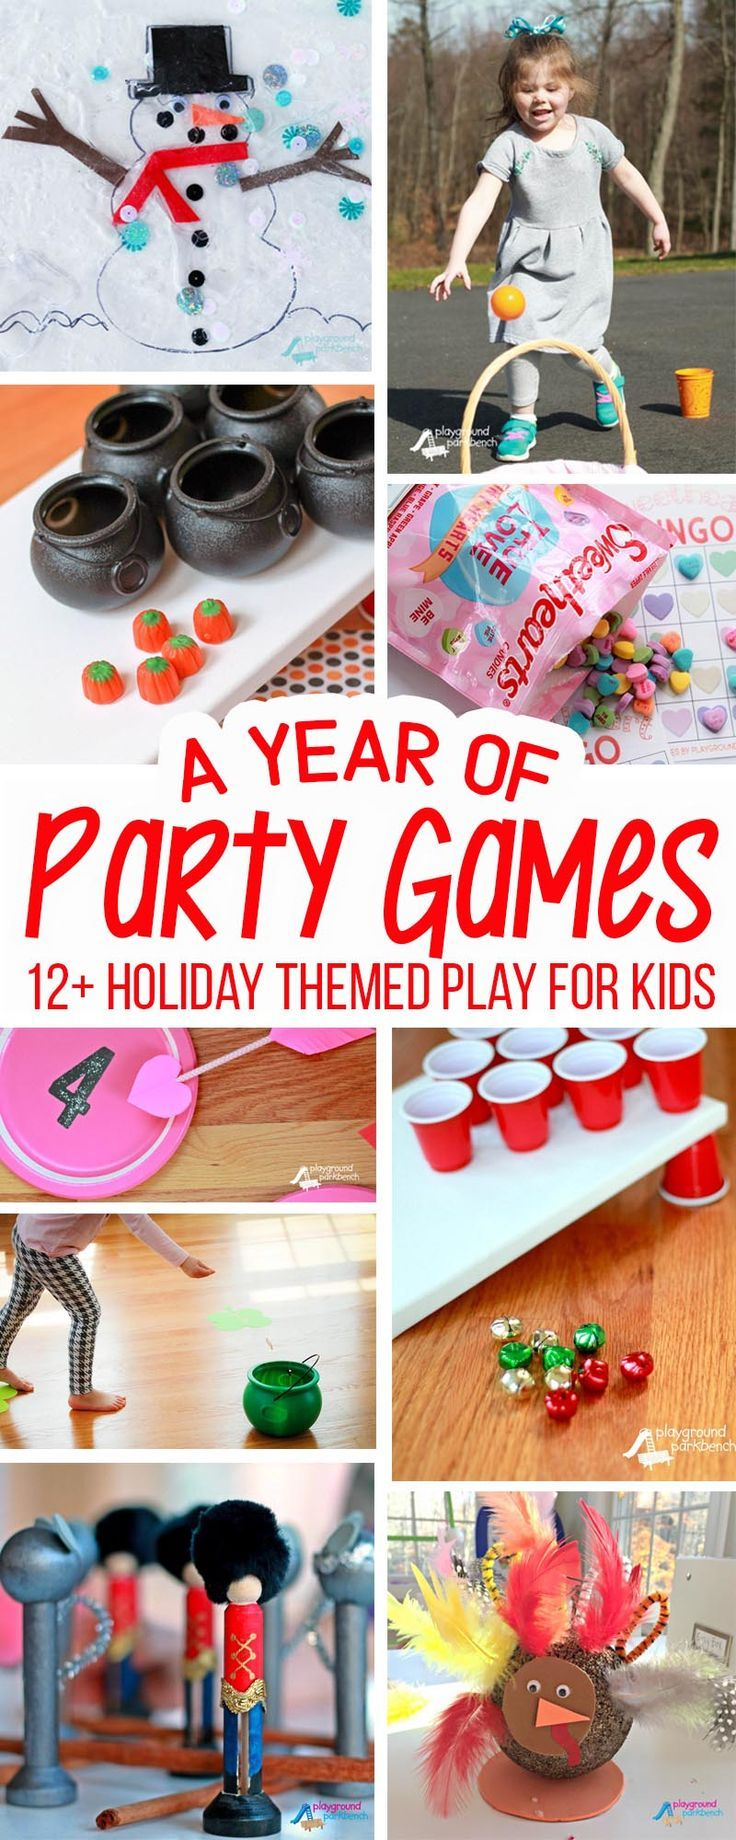 No matter the holiday, this year's worth of kids party games has the perfect, fun and affordable entertainment for family gatherings or class parties